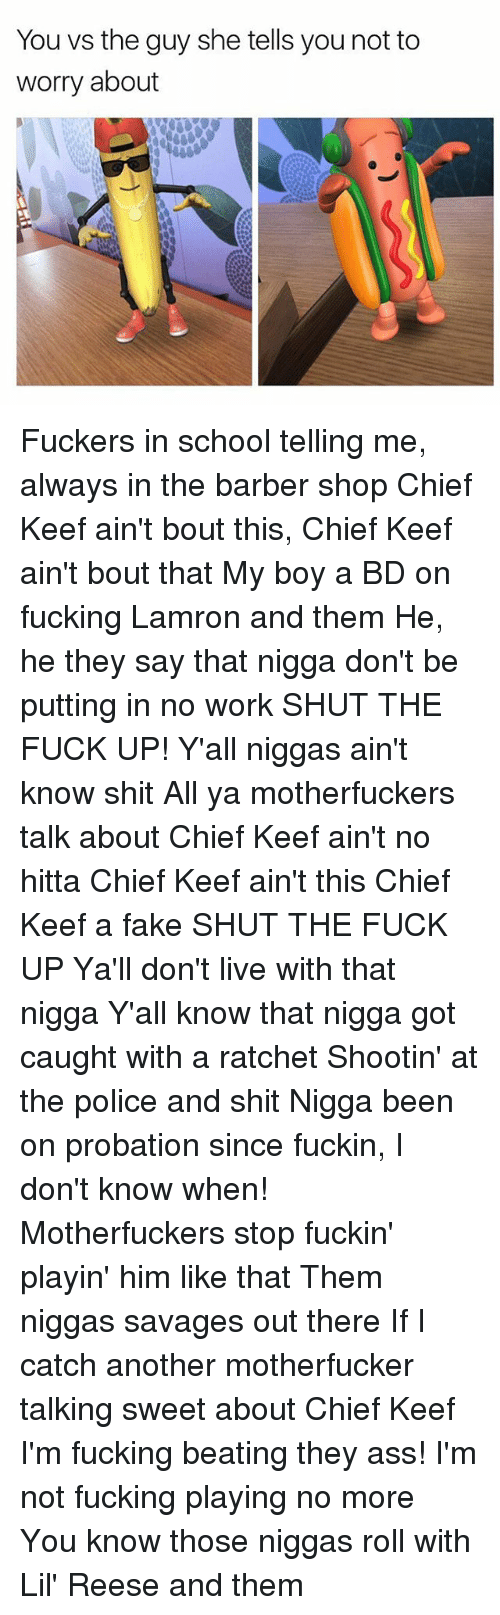 Ass, Barber, and Chief Keef: You vs the guy she tells you not to  worry about Fuckers in school telling me, always in the barber shop Chief Keef ain't bout this, Chief Keef ain't bout that My boy a BD on fucking Lamron and them He, he they say that nigga don't be putting in no work SHUT THE FUCK UP! Y'all niggas ain't know shit All ya motherfuckers talk about Chief Keef ain't no hitta Chief Keef ain't this Chief Keef a fake SHUT THE FUCK UP Ya'll don't live with that nigga Y'all know that nigga got caught with a ratchet Shootin' at the police and shit Nigga been on probation since fuckin, I don't know when! Motherfuckers stop fuckin' playin' him like that Them niggas savages out there If I catch another motherfucker talking sweet about Chief Keef I'm fucking beating they ass! I'm not fucking playing no more You know those niggas roll with Lil' Reese and them